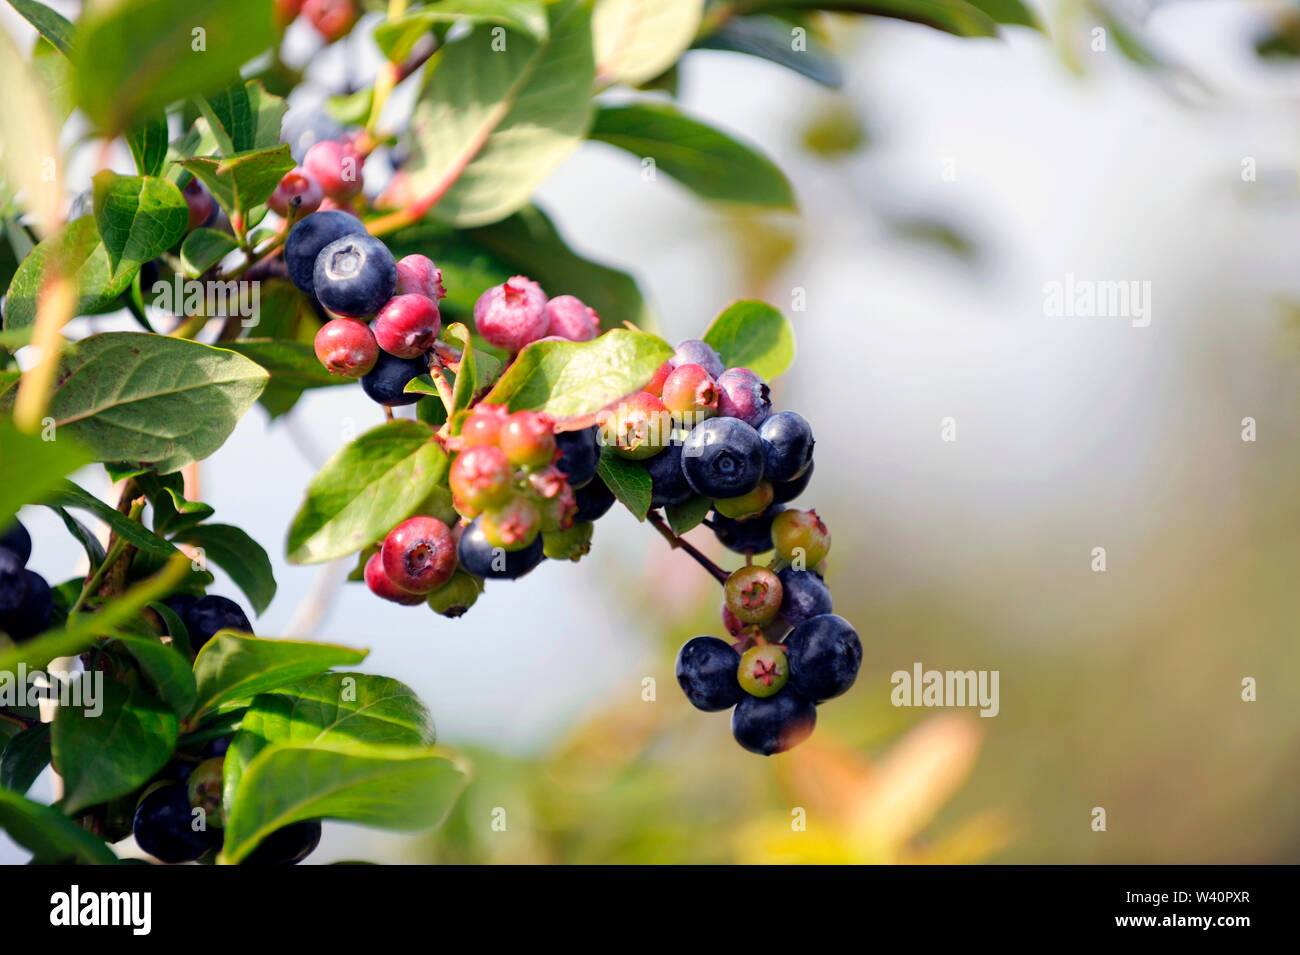 close up of a bunch of blueberries on tree - Stock Image